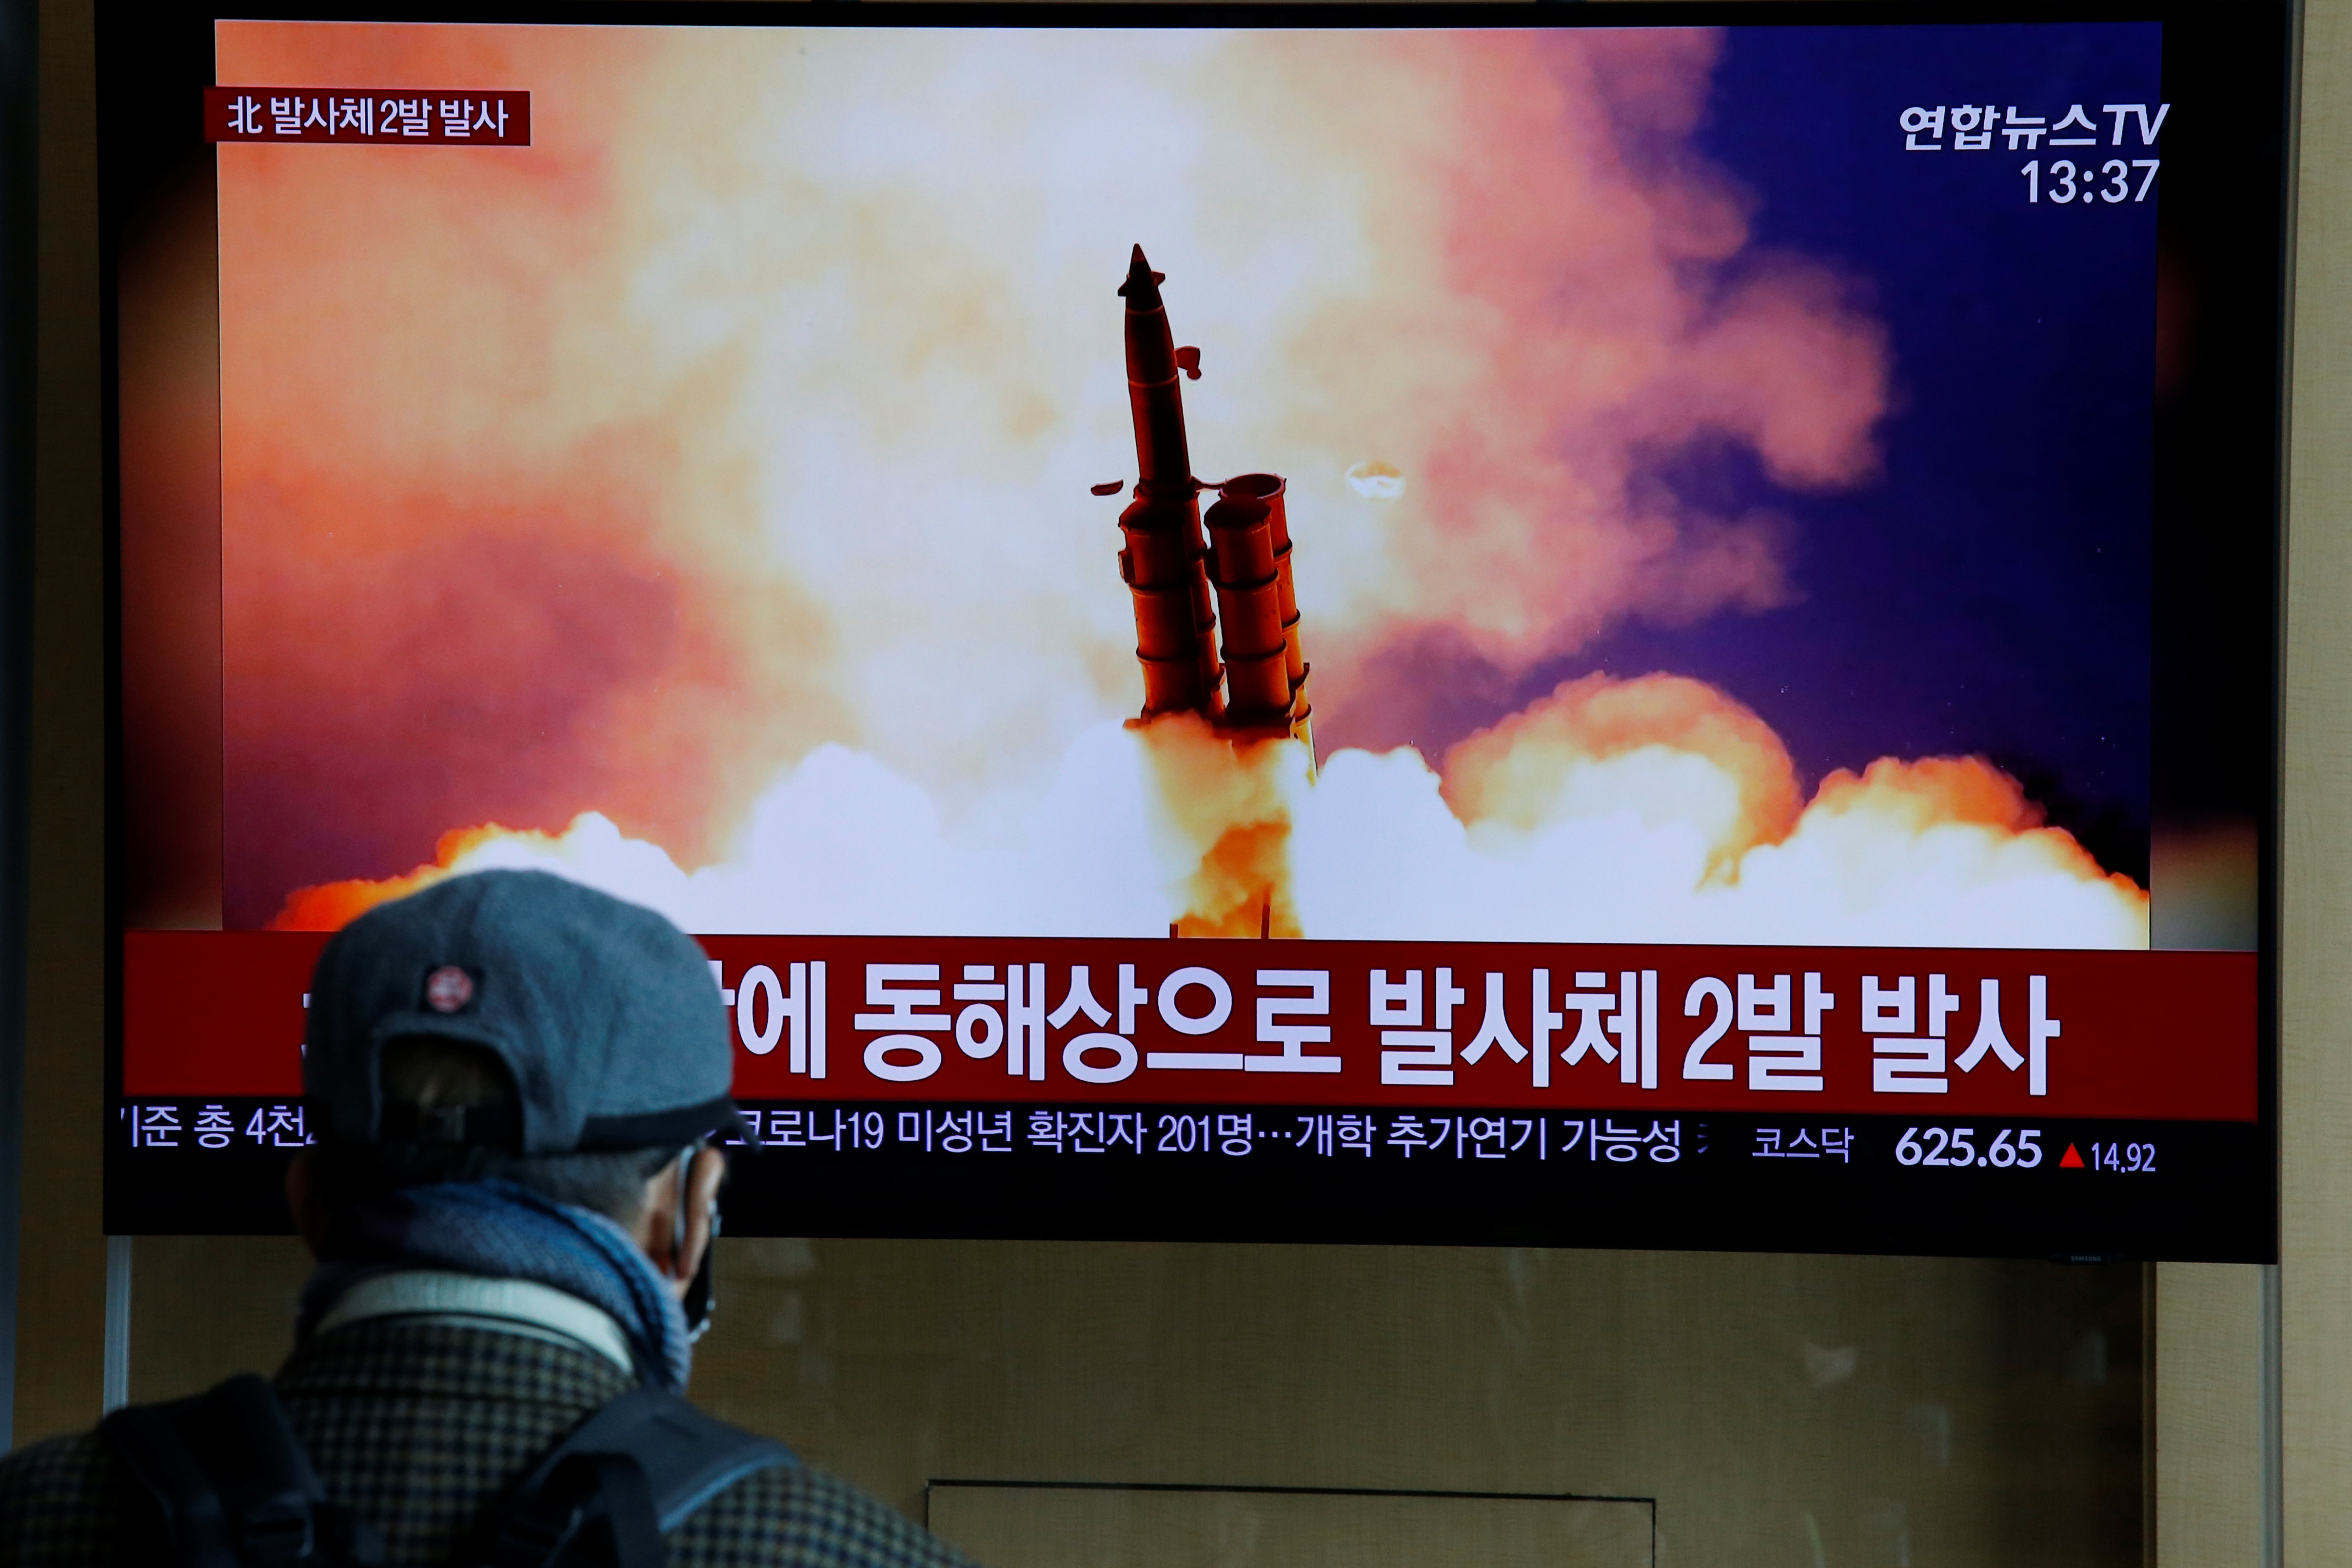 North Korea Launches 2 Unidentified Projectiles, South Korea Says